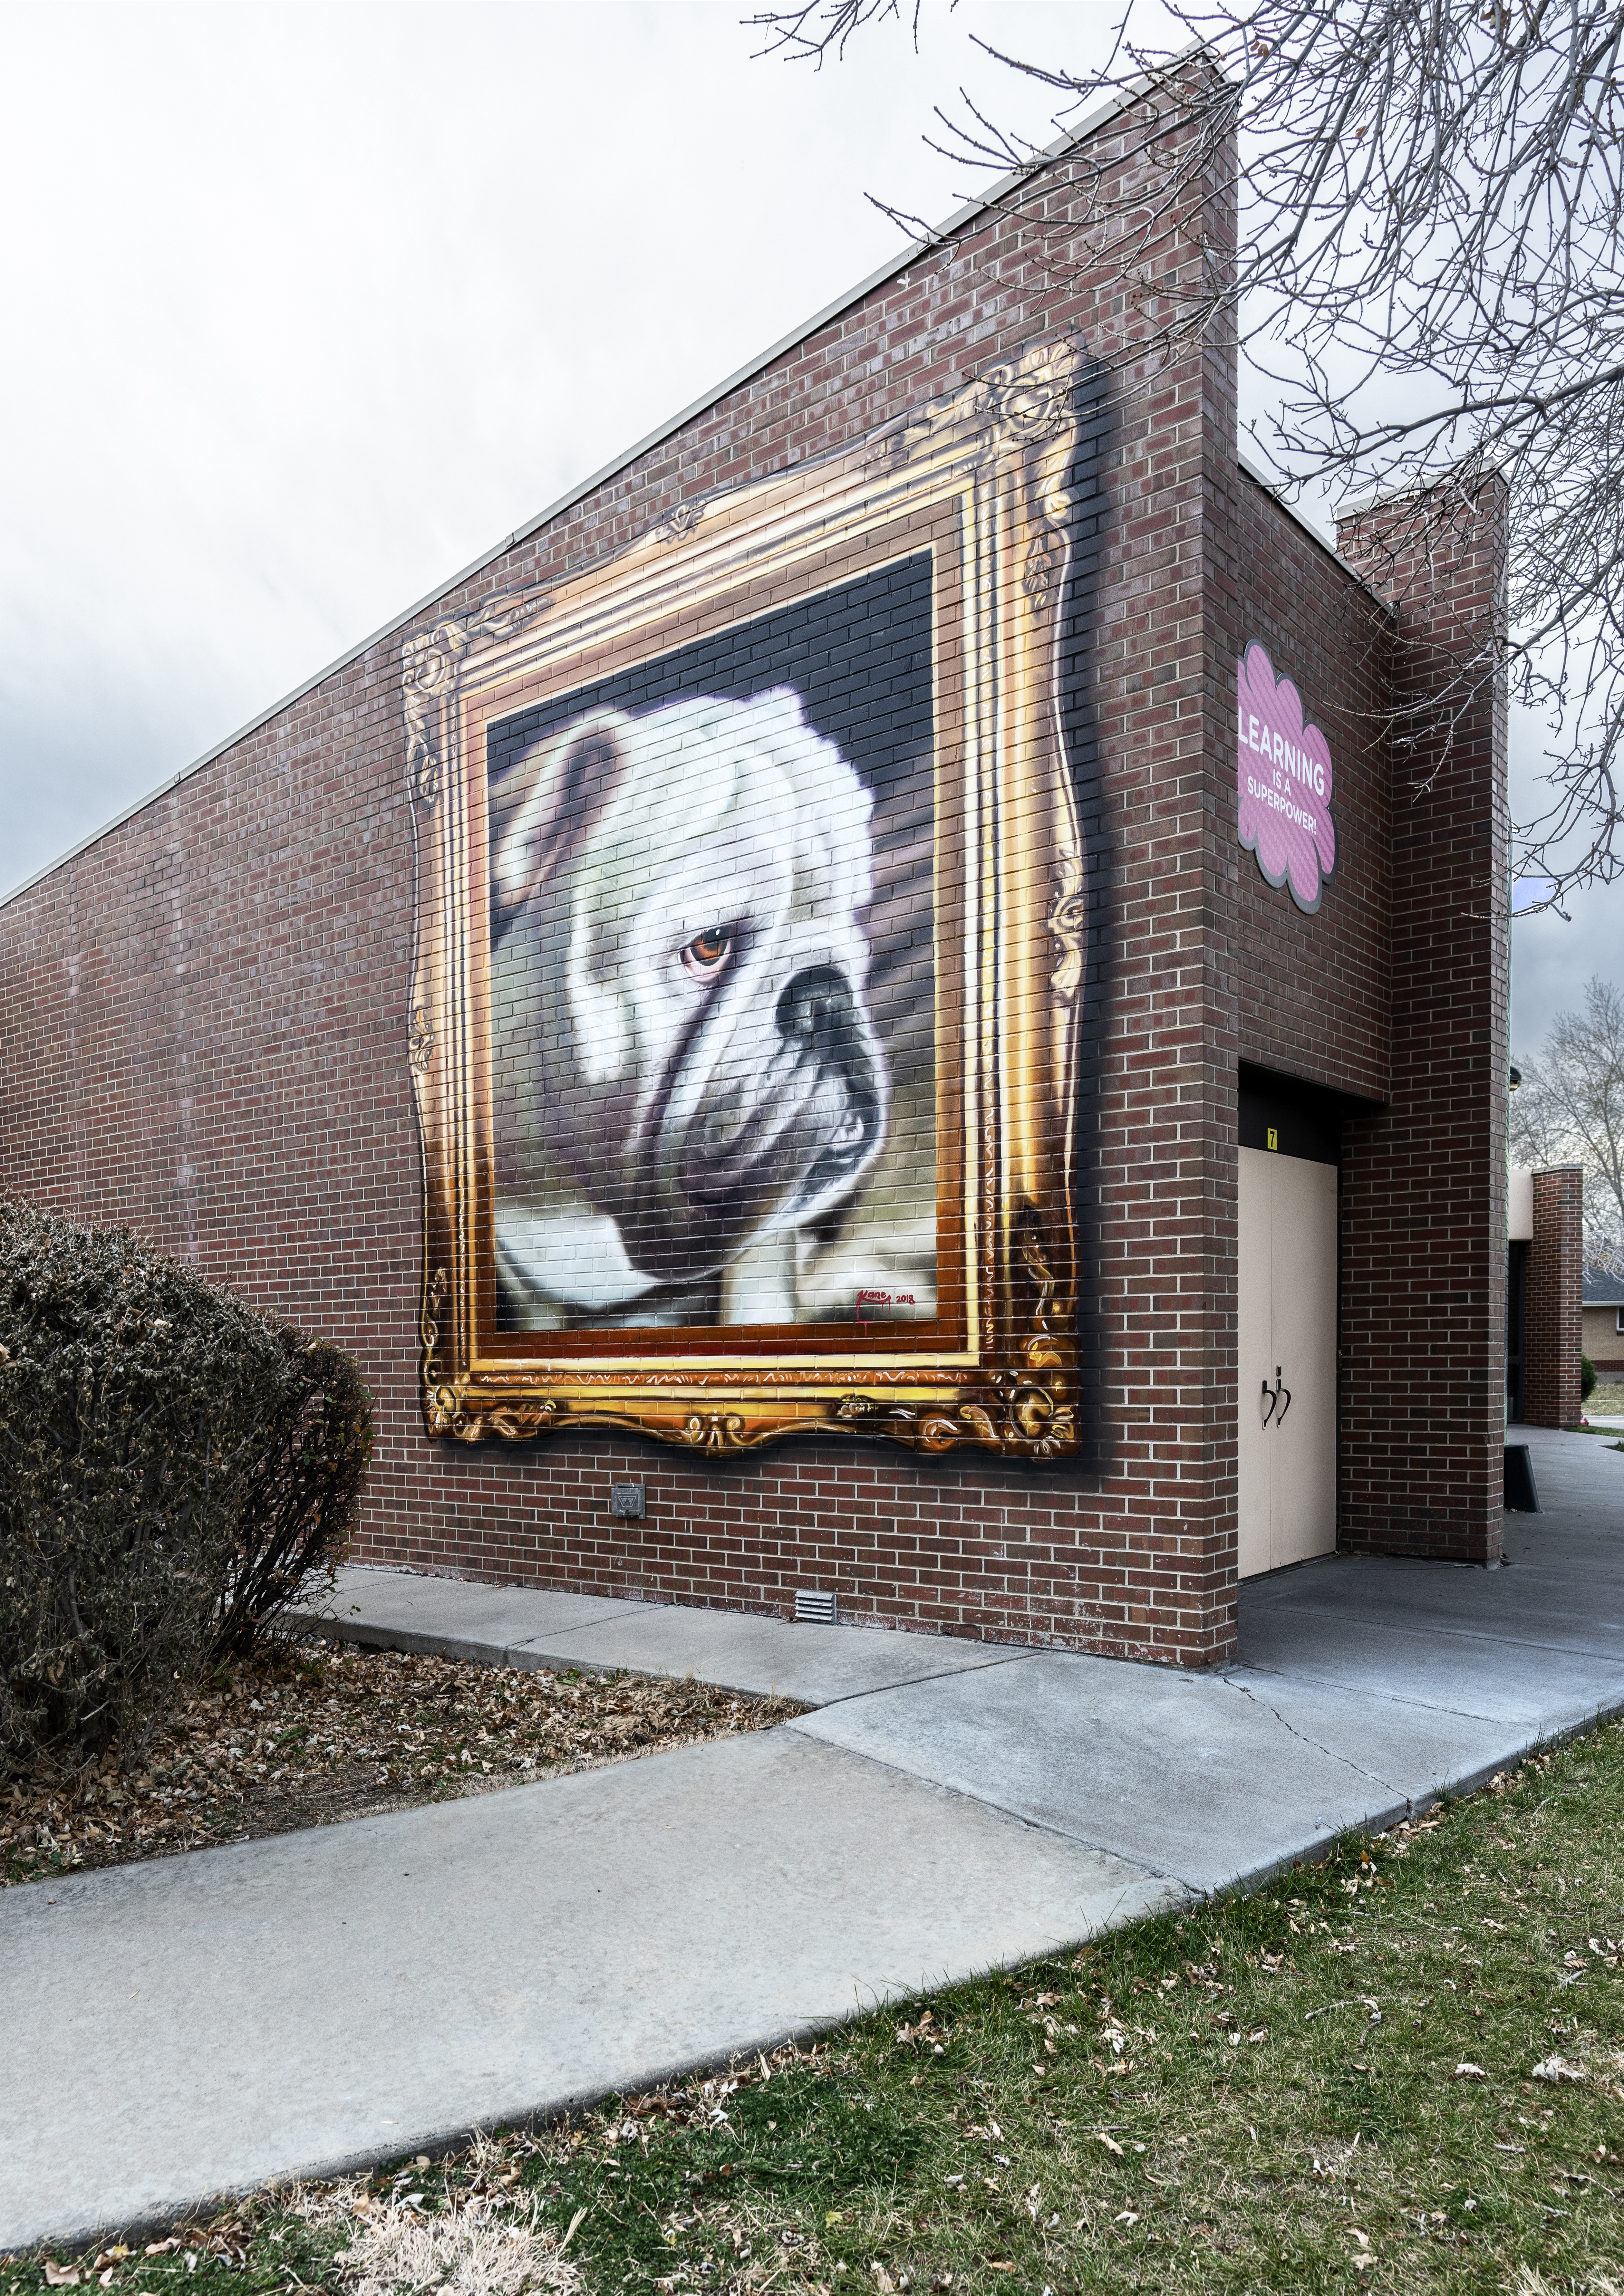 Untitled (portrait of bulldog with gold frame)